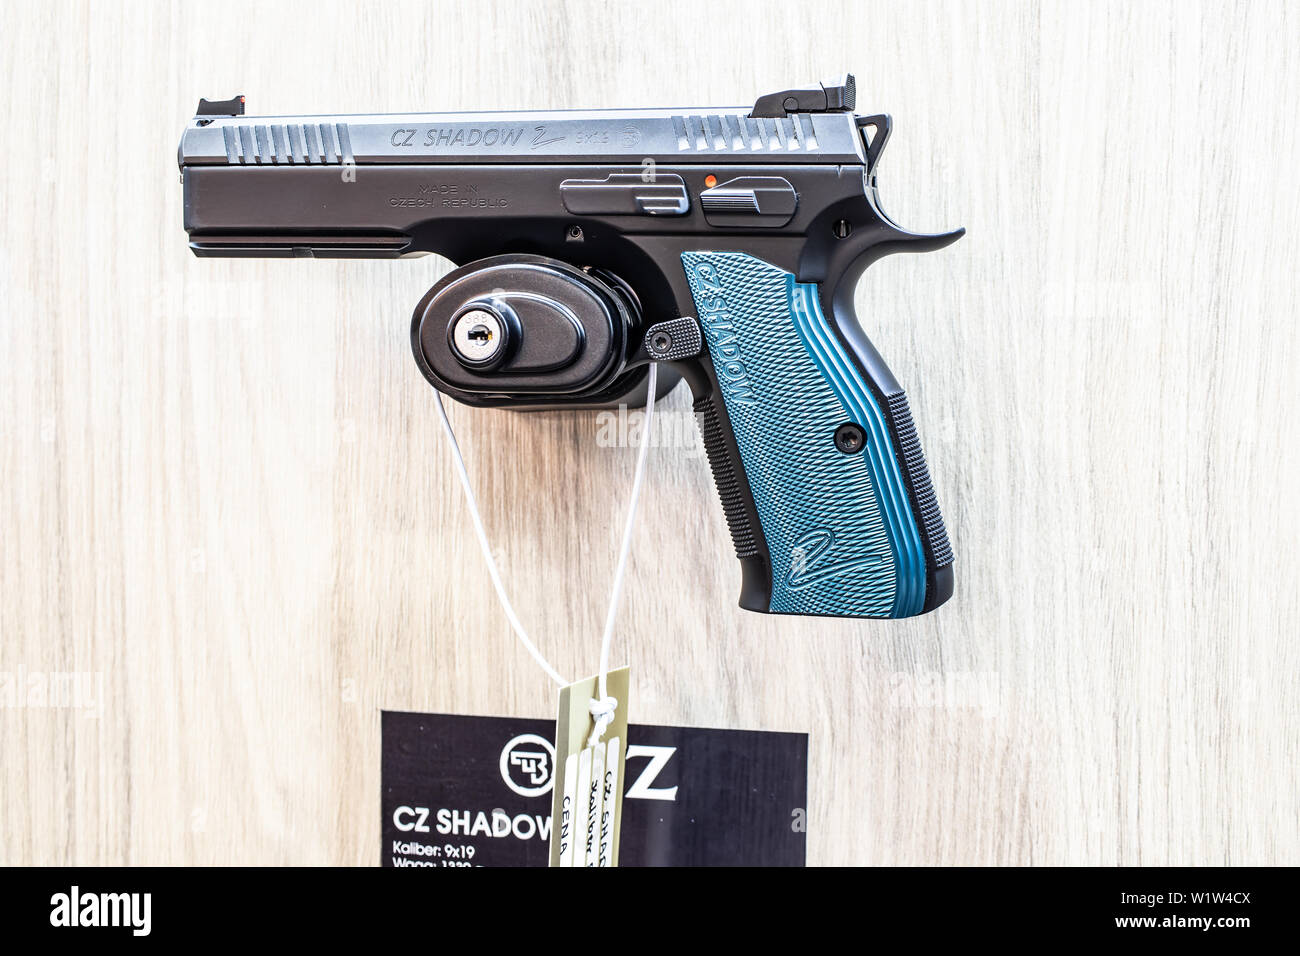 Poznan, Poland, Feb 2019 CZ semi-automatic pistol made by Czech firearm manufacturer CZUB in Czech Republic, exposition, KNIEJE Hunting shooting fair Stock Photo